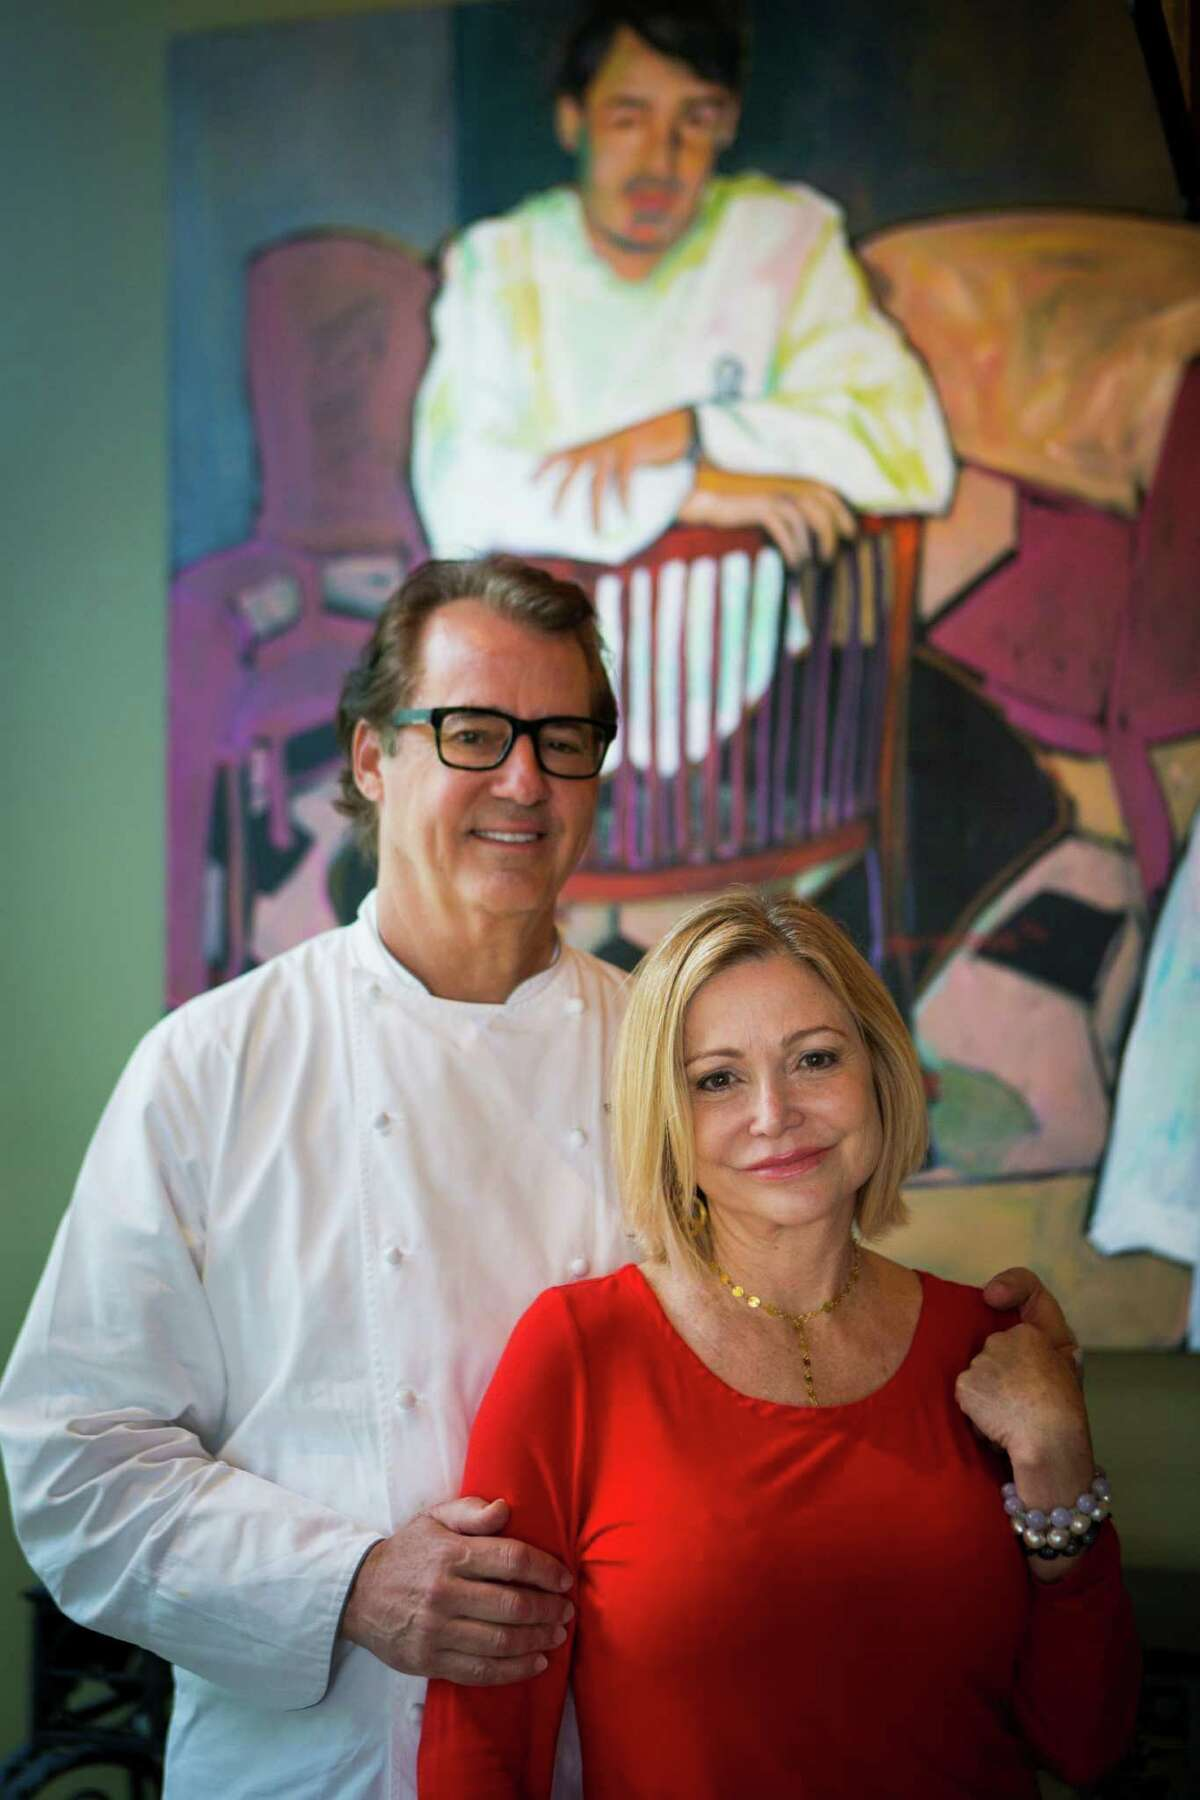 Robert Del Grande and his wife Mimi Del Grande are the owners of the restaurant, RDG & Bar Annie, which had its roots as Cafe Annie and will return to that old name and original menu items. Del Grande, Houston's first celebrity chef, is overseeing the revival of Cafe Annie as part of the restaurant's 35-year anniversary. Monday, May 9, 2016, in Houston. ( Marie D. De Jesus / Houston Chronicle )